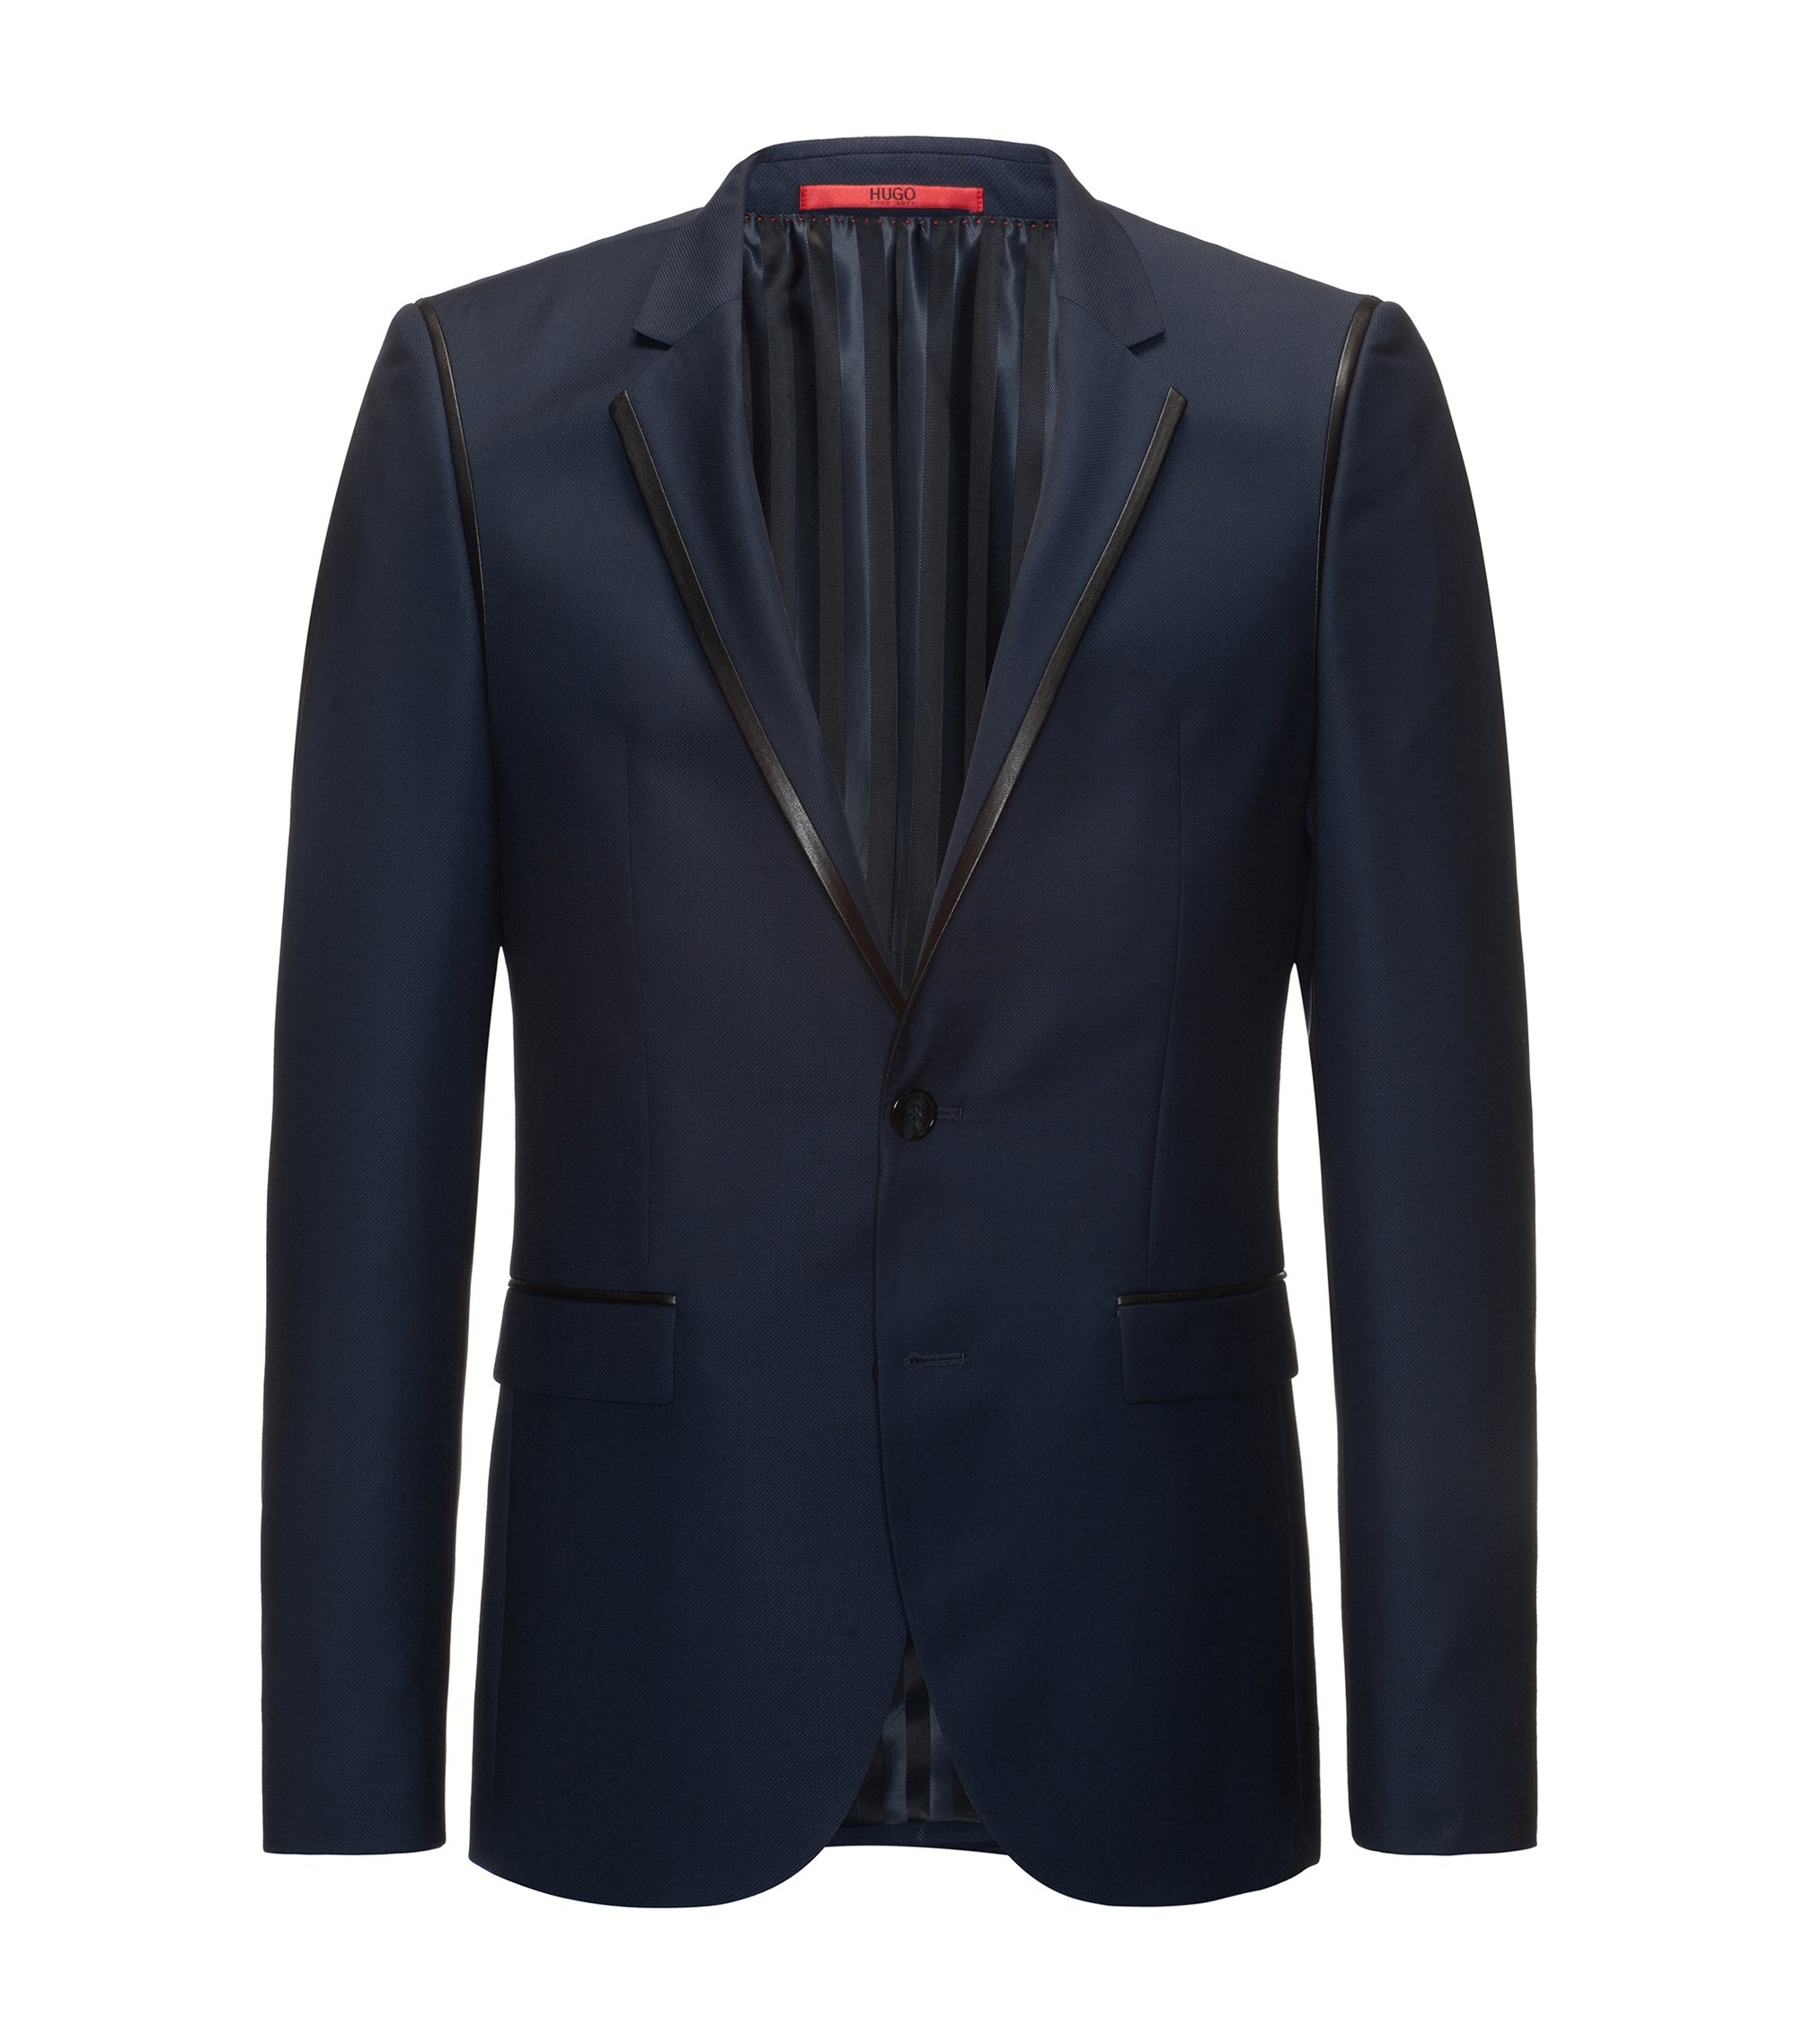 Leather-Trim Wool Sport Coat, Extra Slim Fit | Arwet, Dark Blue